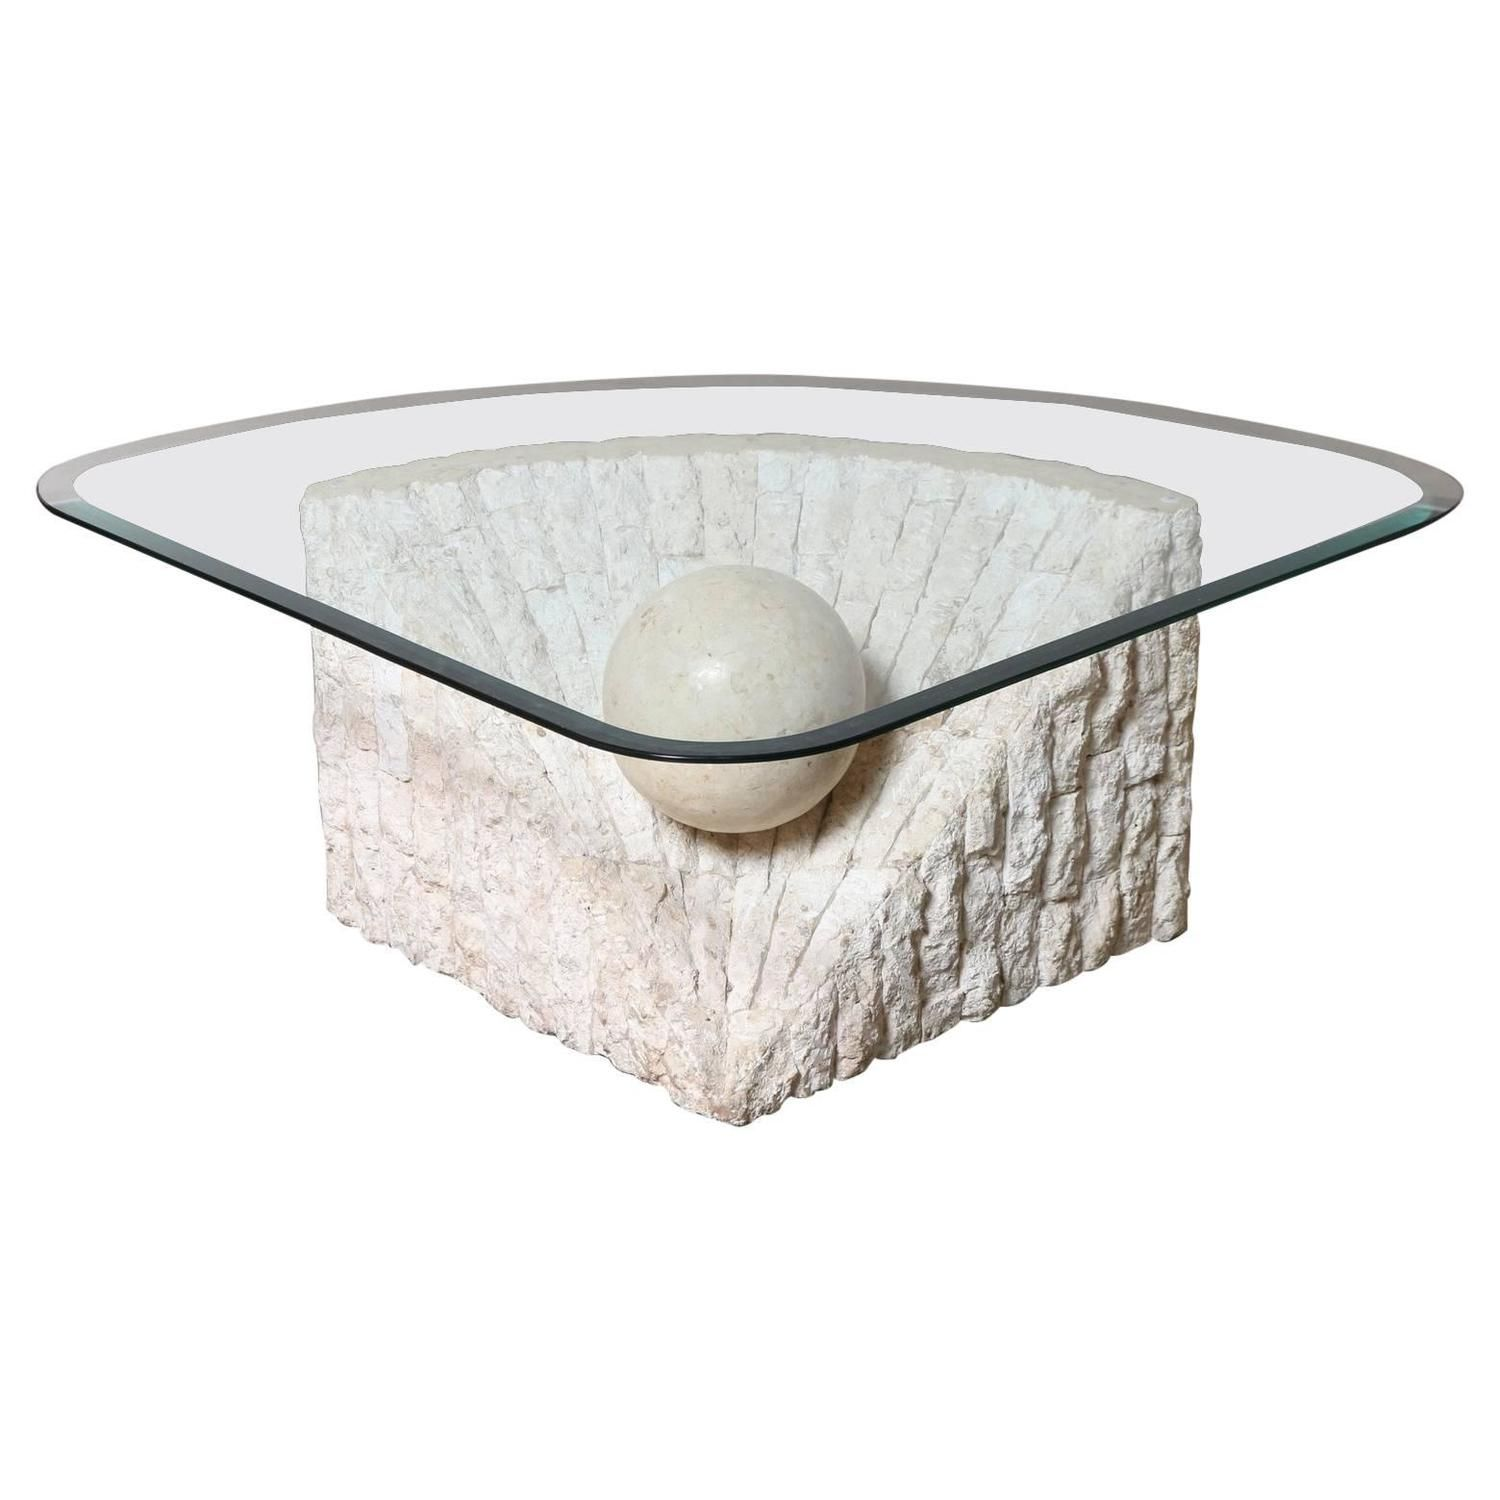 Triangular Marble And Travertine Coffee Table With Beveled Edge Glass Top 1